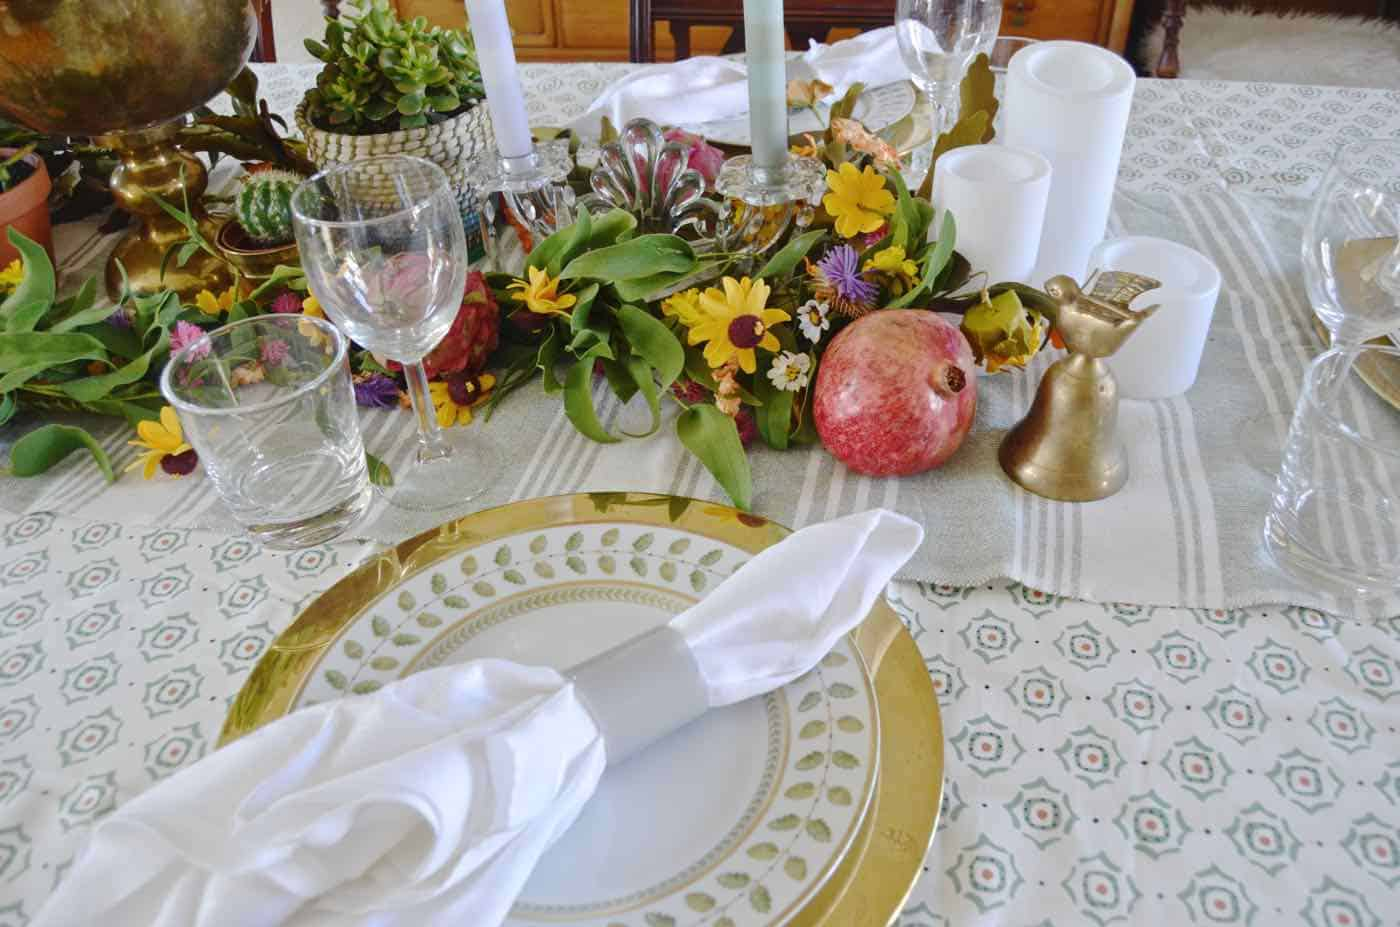 Thanksgiving tablescape with lush greenery and vegetables.